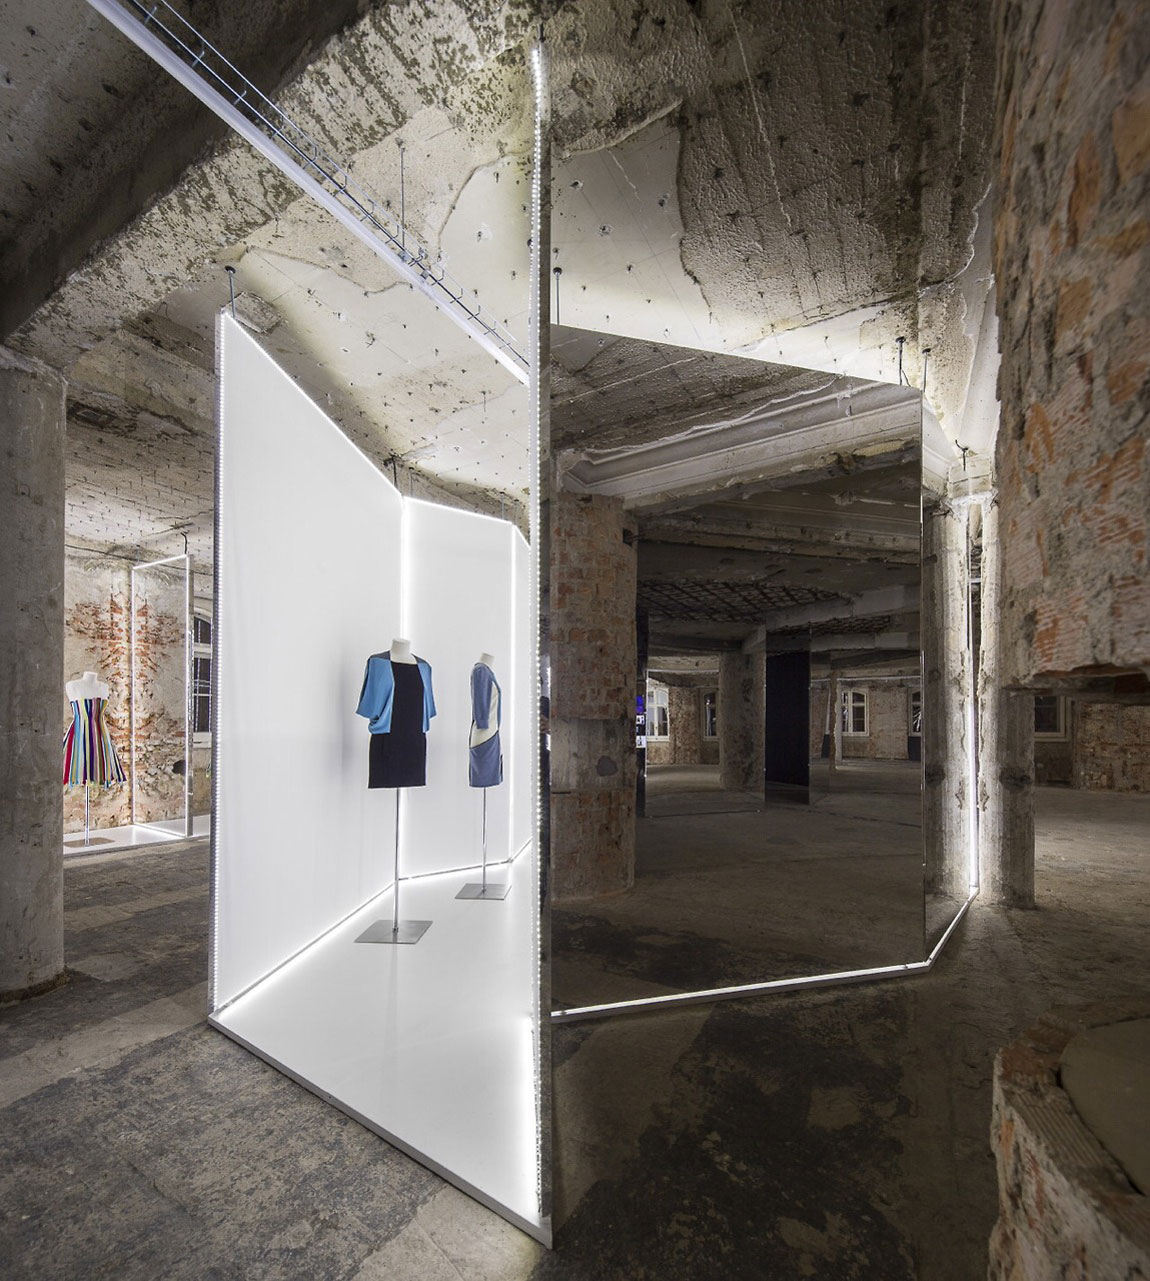 Bureau Betak's Knockout Mirrored Installation for Felipe Oliveira Baptista.